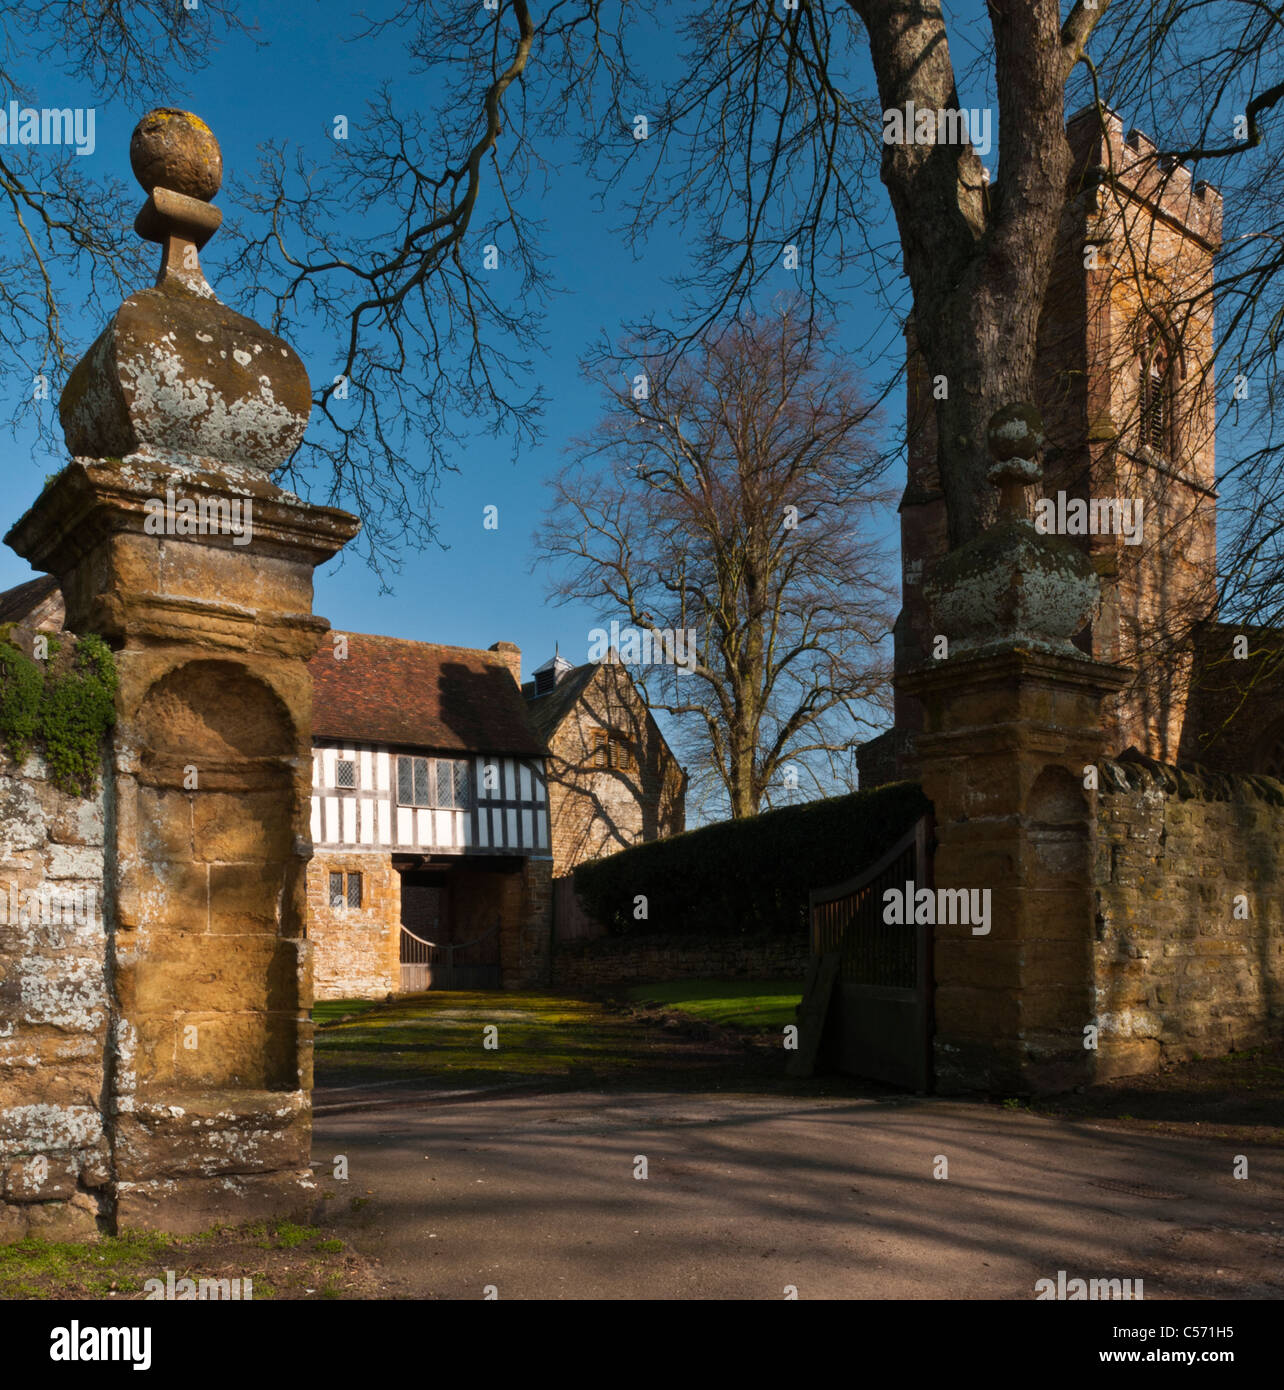 Entrance and Gatehouse to Ashby St Ledgers Manor in Northamptonshire where the Gunpowder Plot was hatched in 1605, - Stock Image